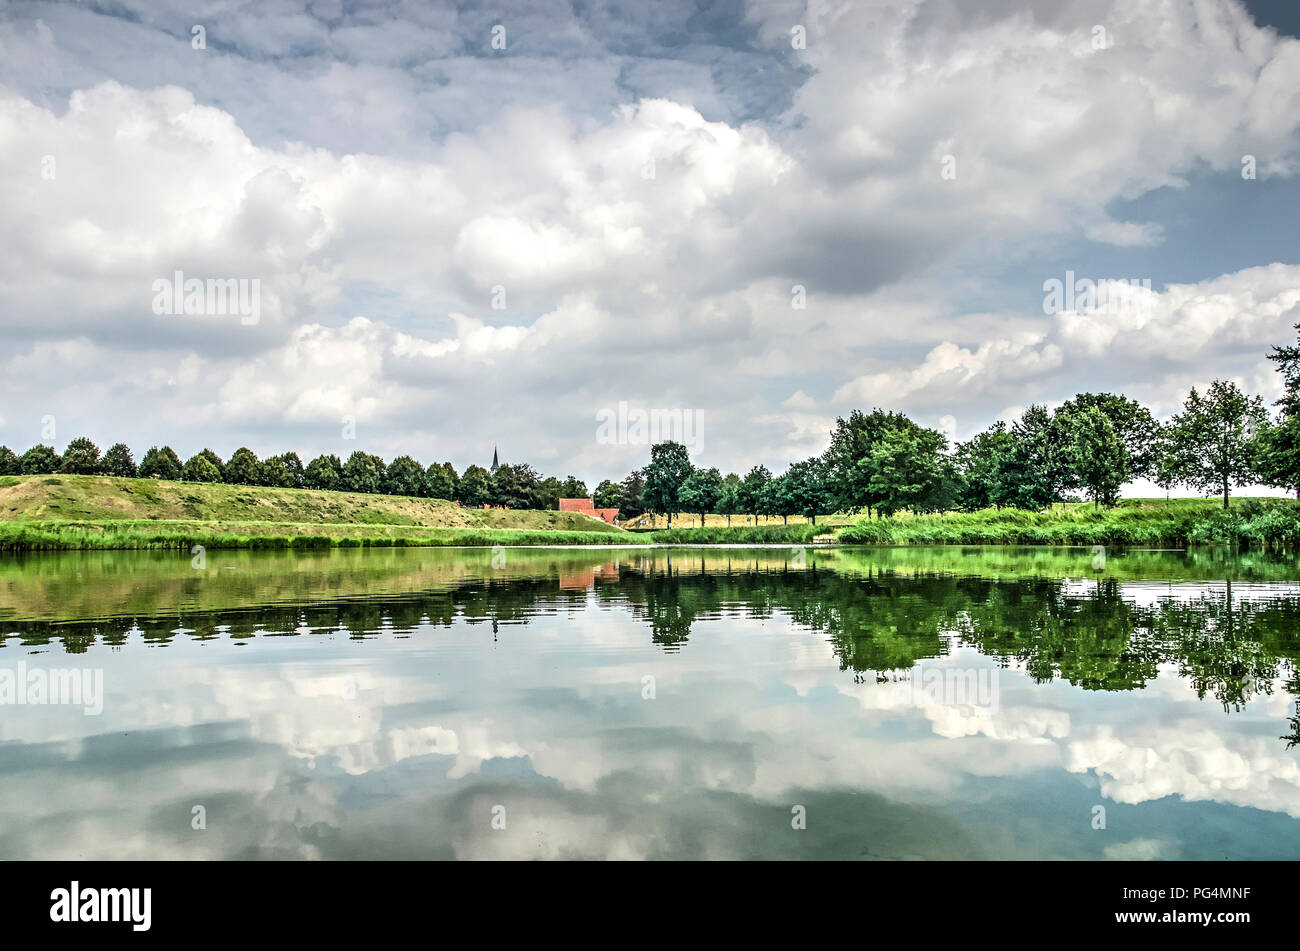 Dramatic cloudy sky reflecting in the calm water of one of the moats surrounding the fortified town of Leusden, The Netherlands - Stock Image